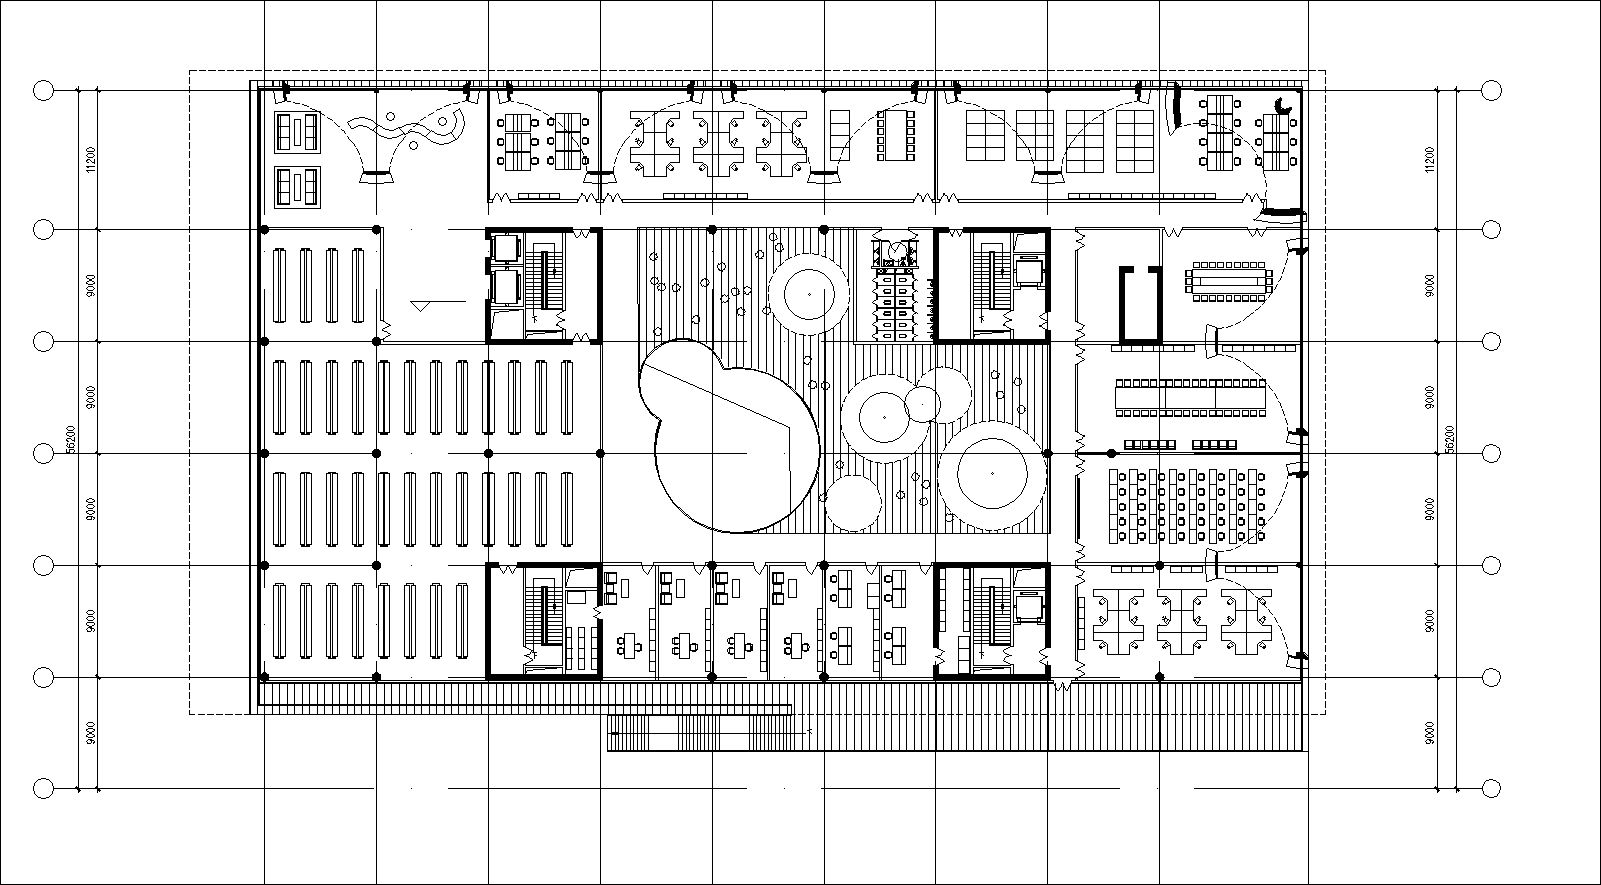 Library Floor Plans and Drawings-Elevations, Floor Plans, and Details